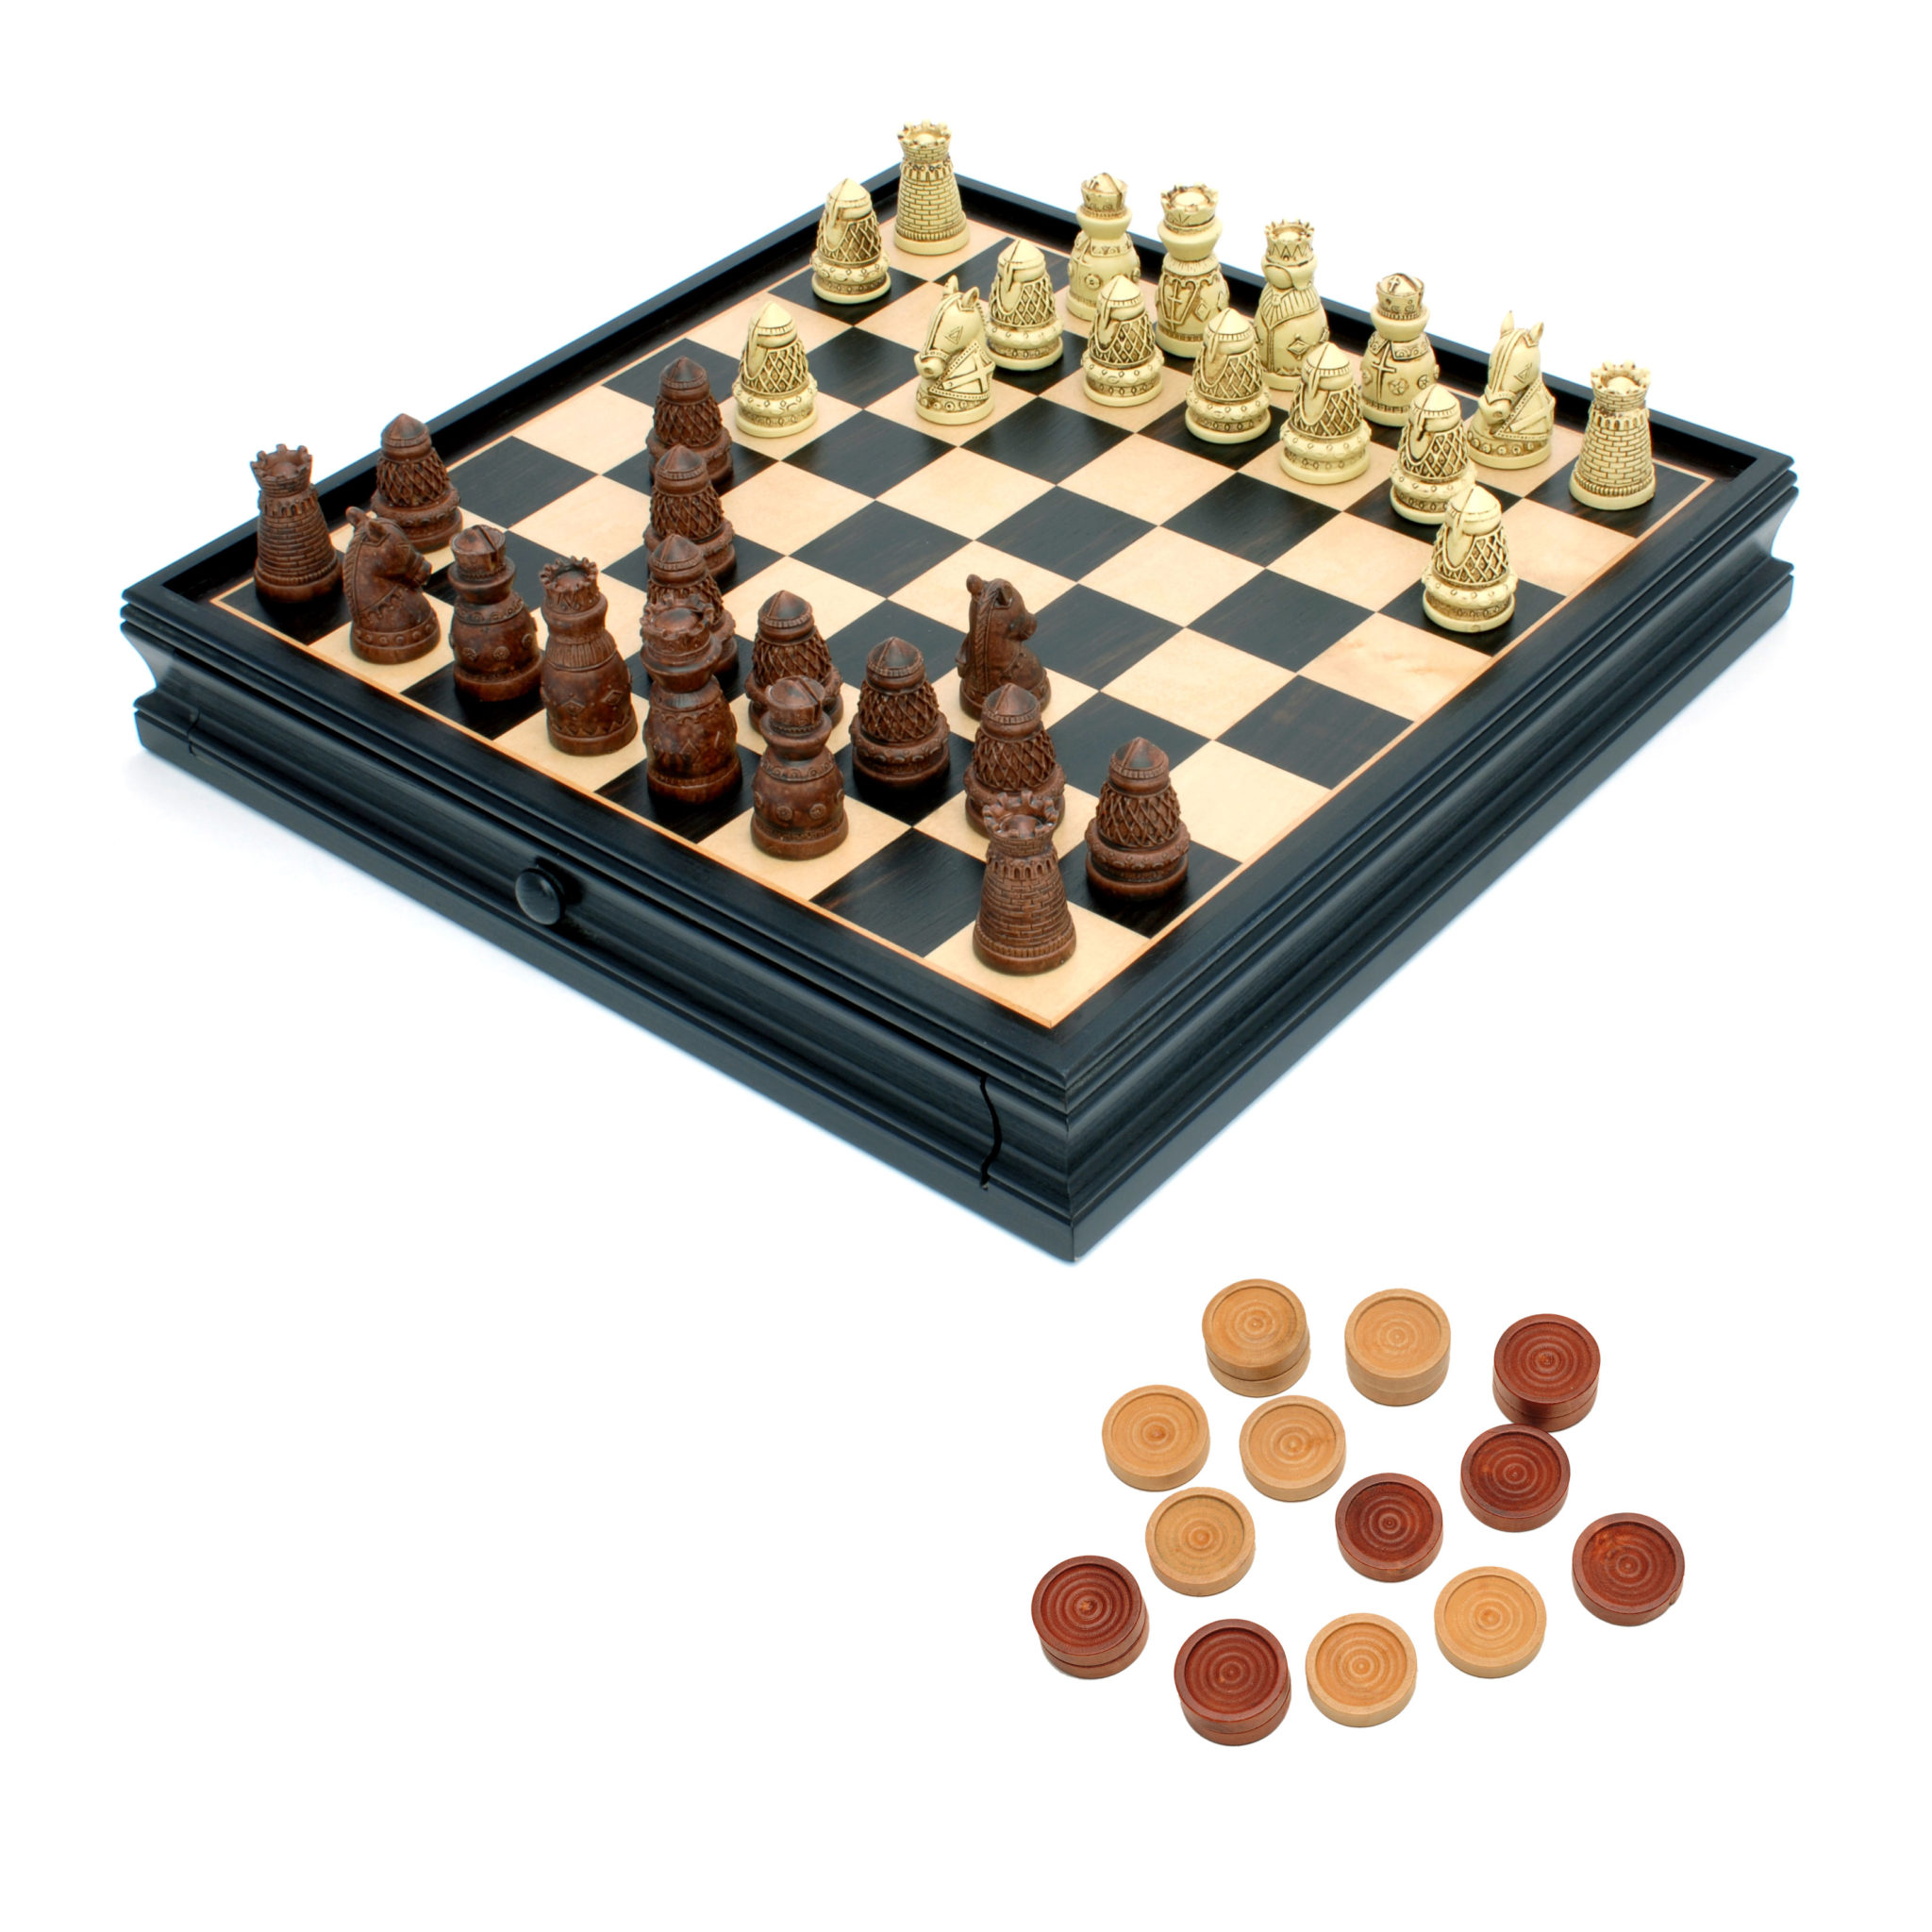 Chess Boards For Sale Amazon Medieval Chess And Checkers Set Polystone Pieces Black